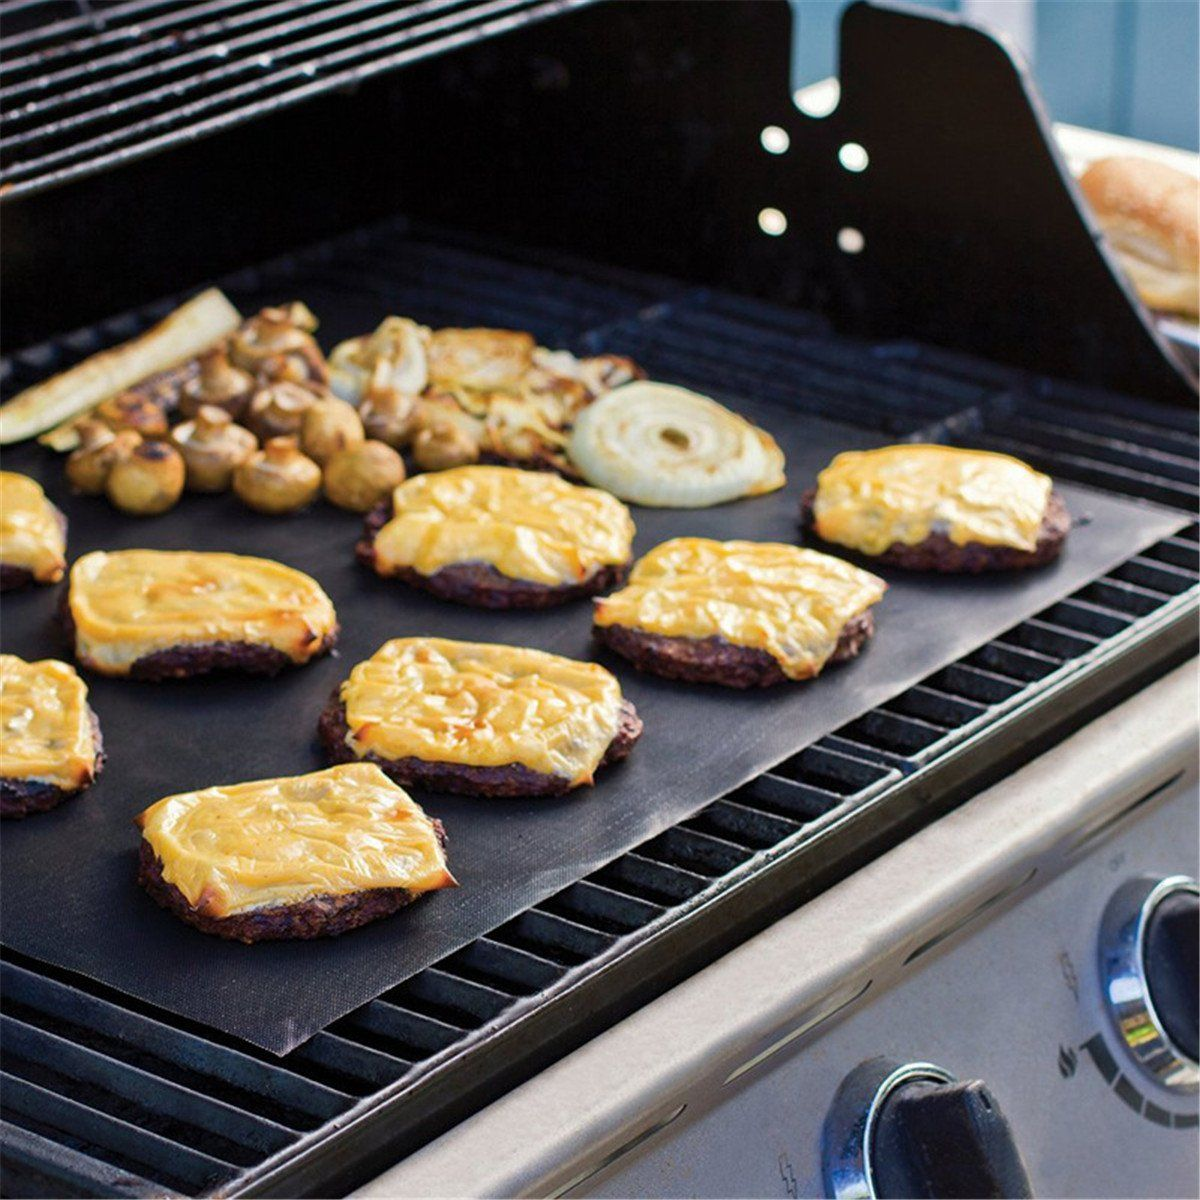 Nbody Grill Mat Reusable Nonstick Bbq Pad For Gas Charcoal And